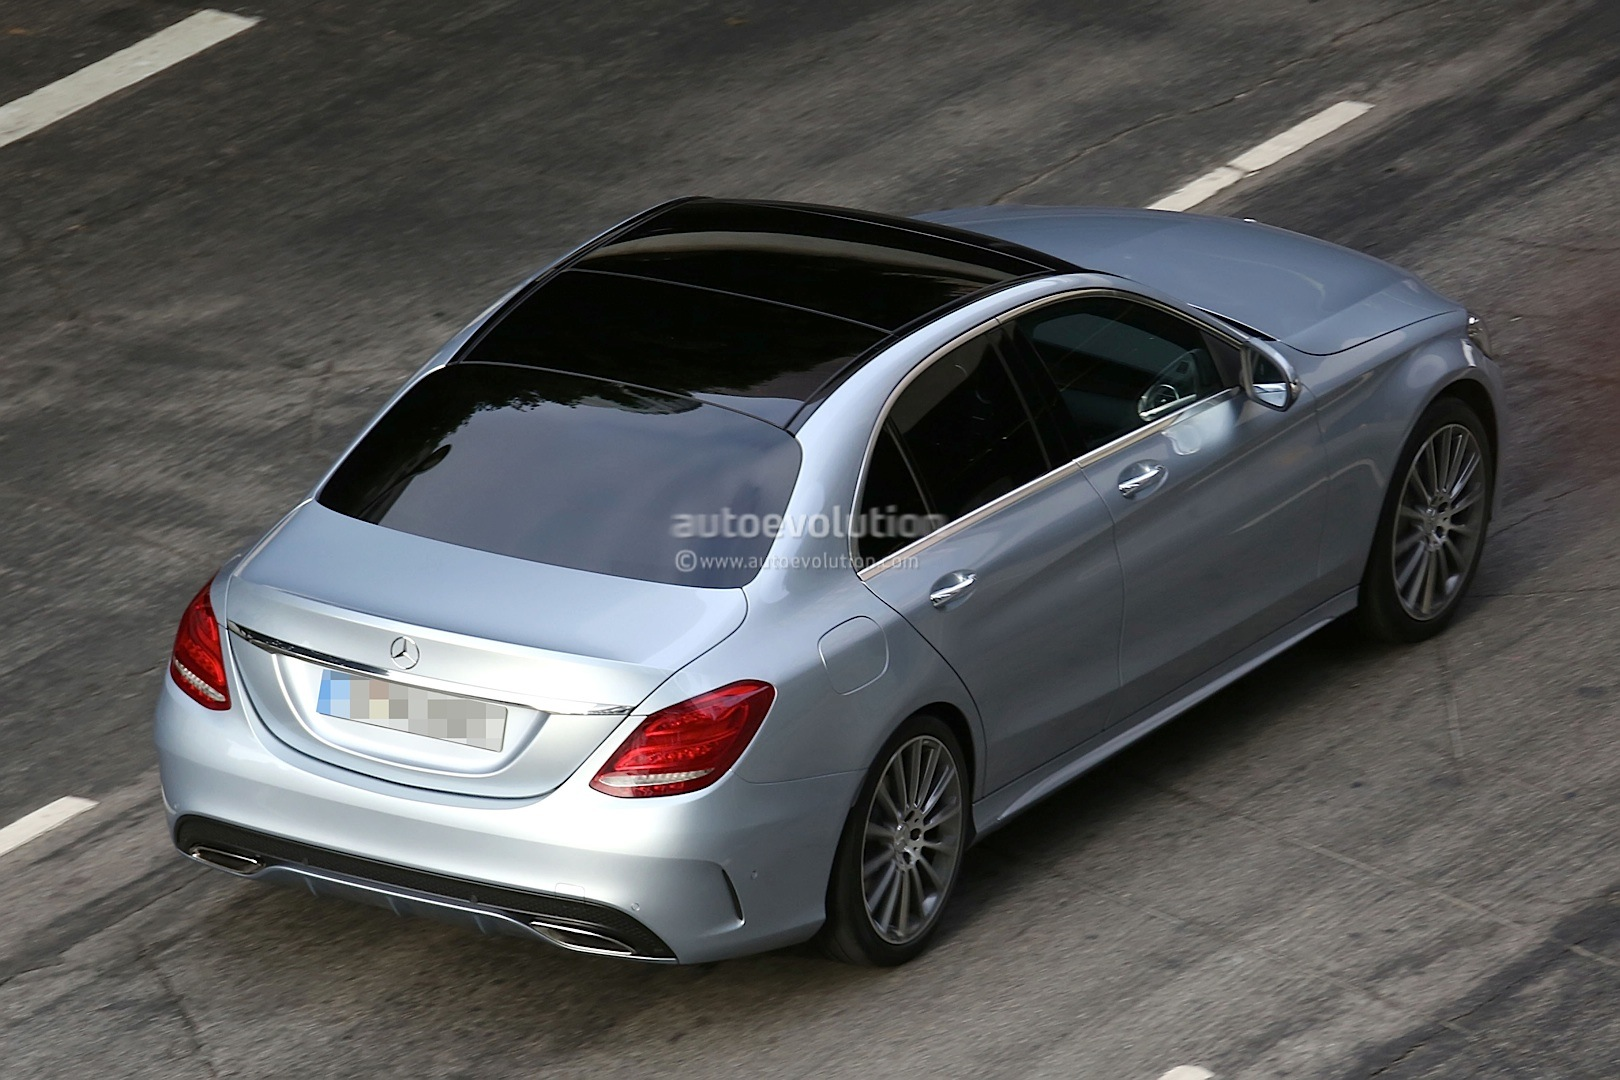 2015 mercedes benz c 180 w205 versus 2014 c 180 w204 for Mercedes benz class 2015